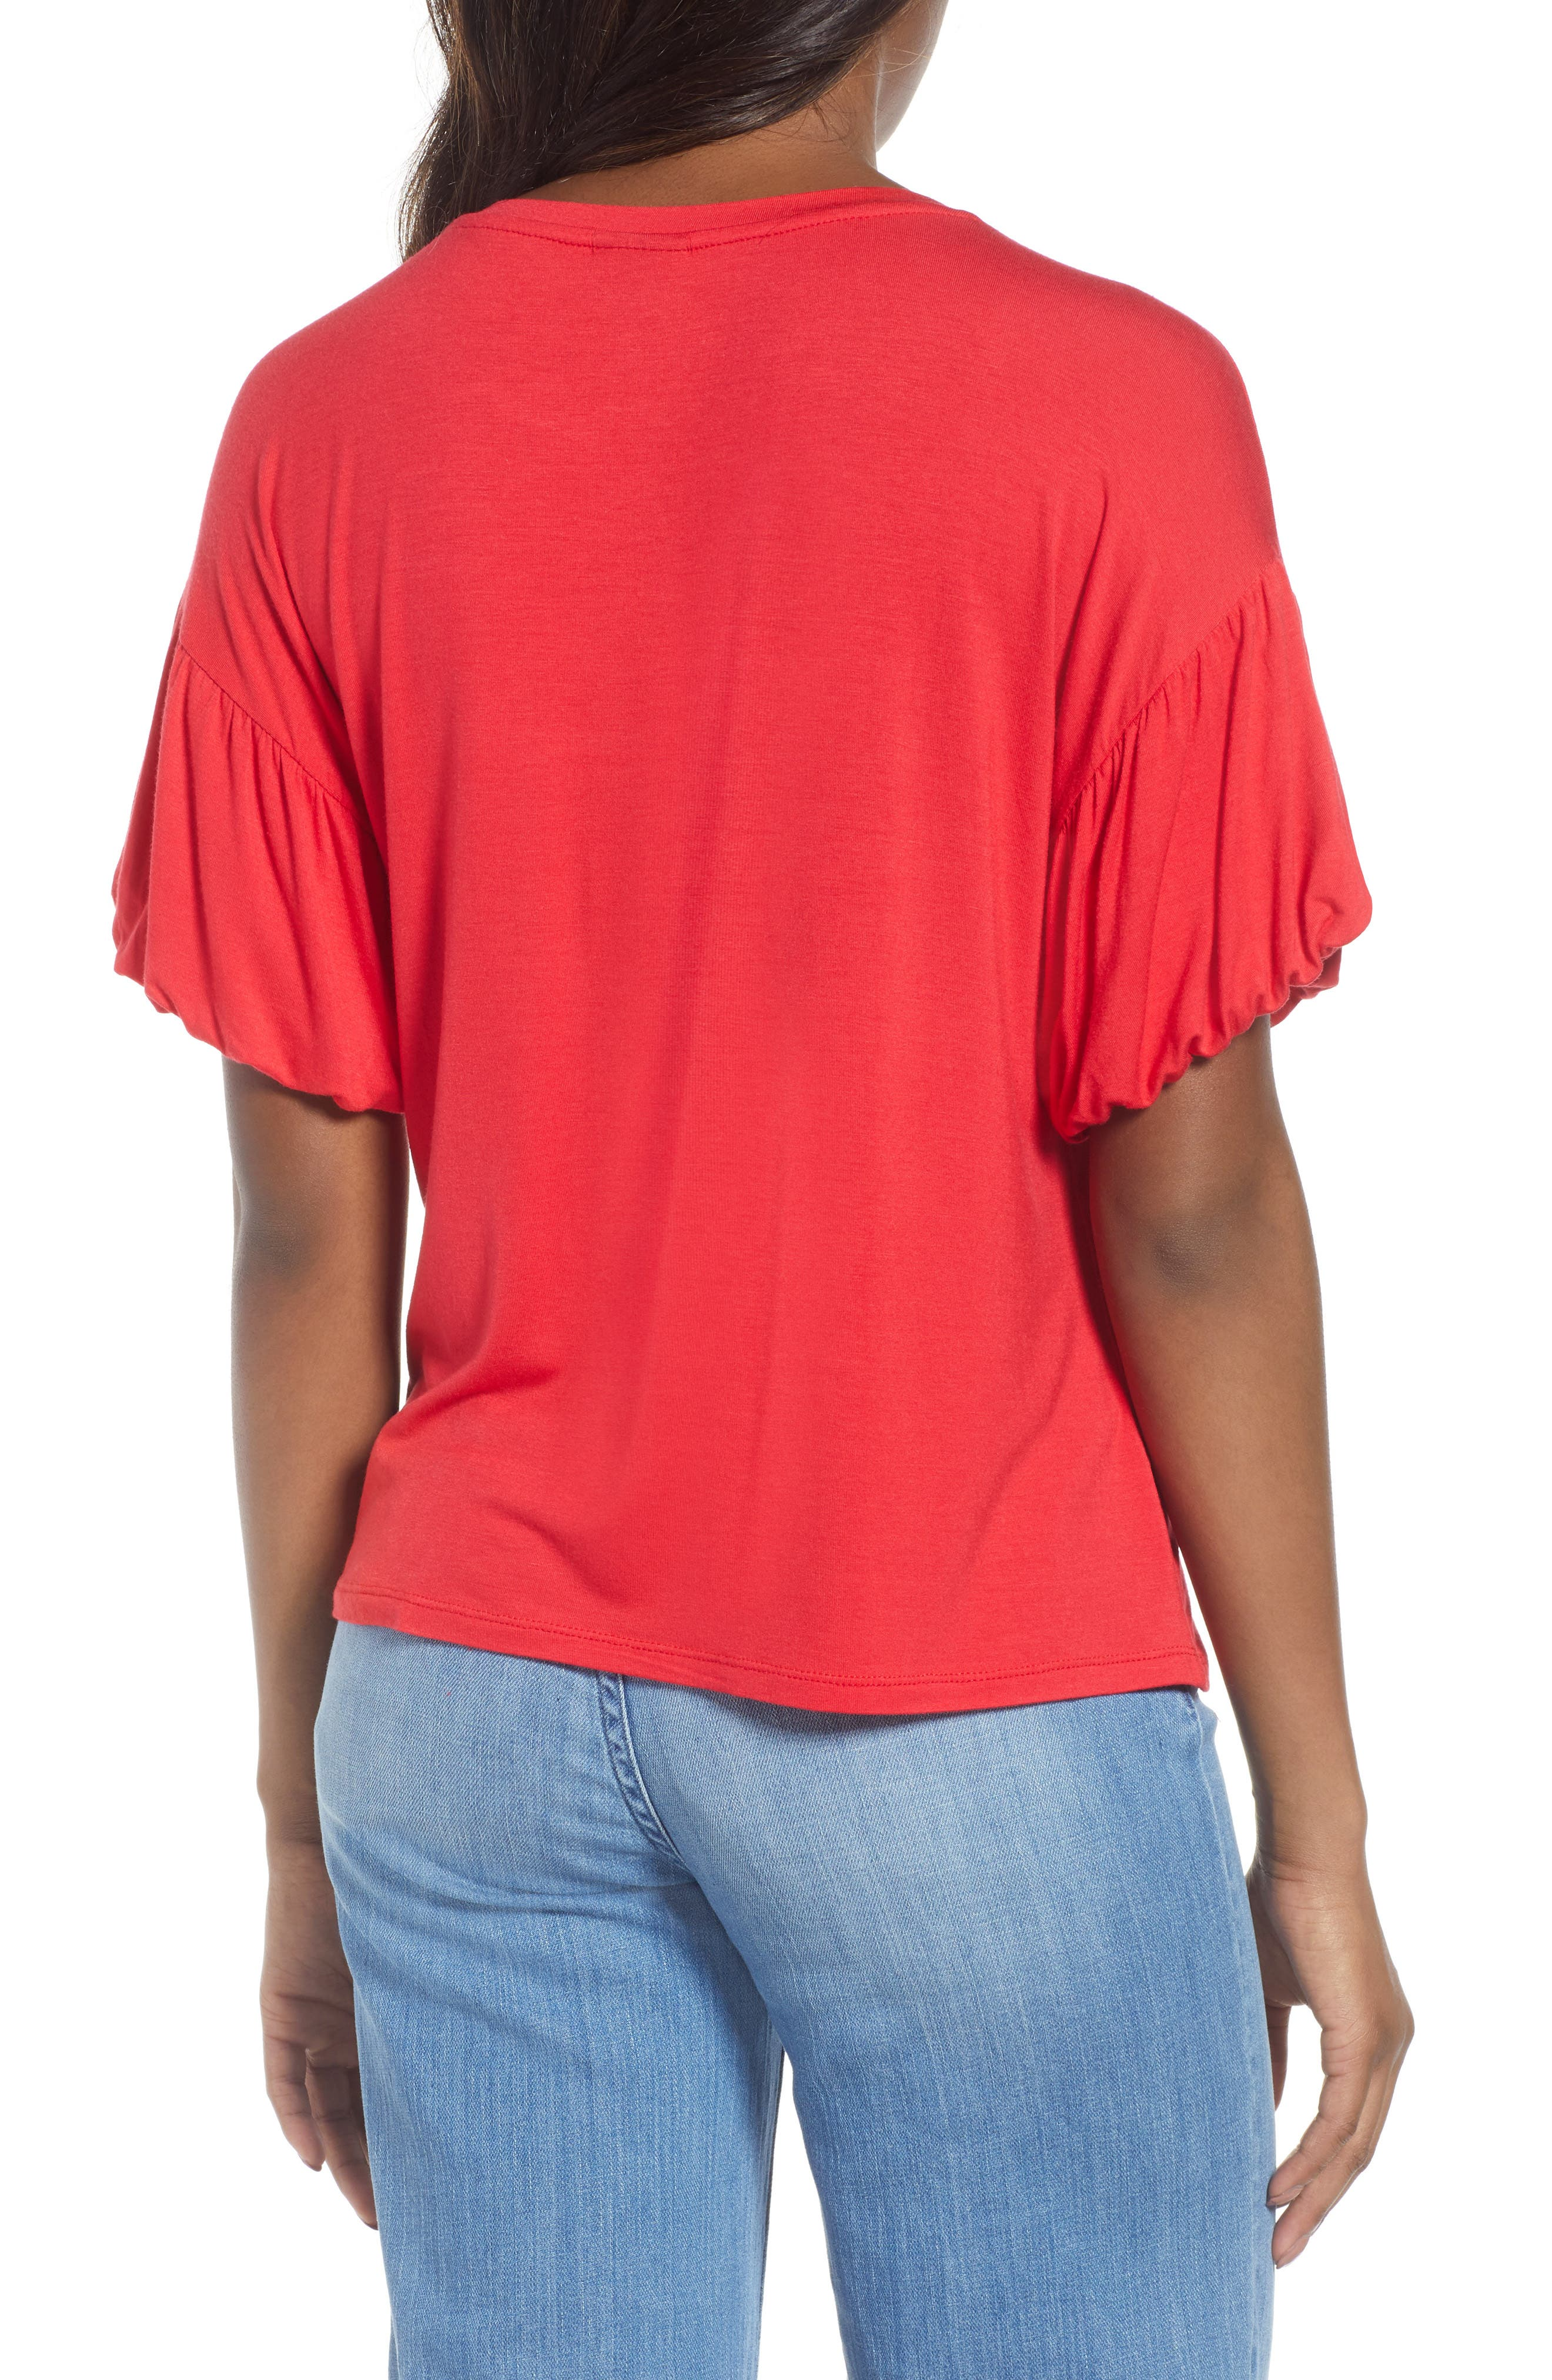 Knit Bubble Sleeve Tee,                             Alternate thumbnail 2, color,                             Red Lipstick